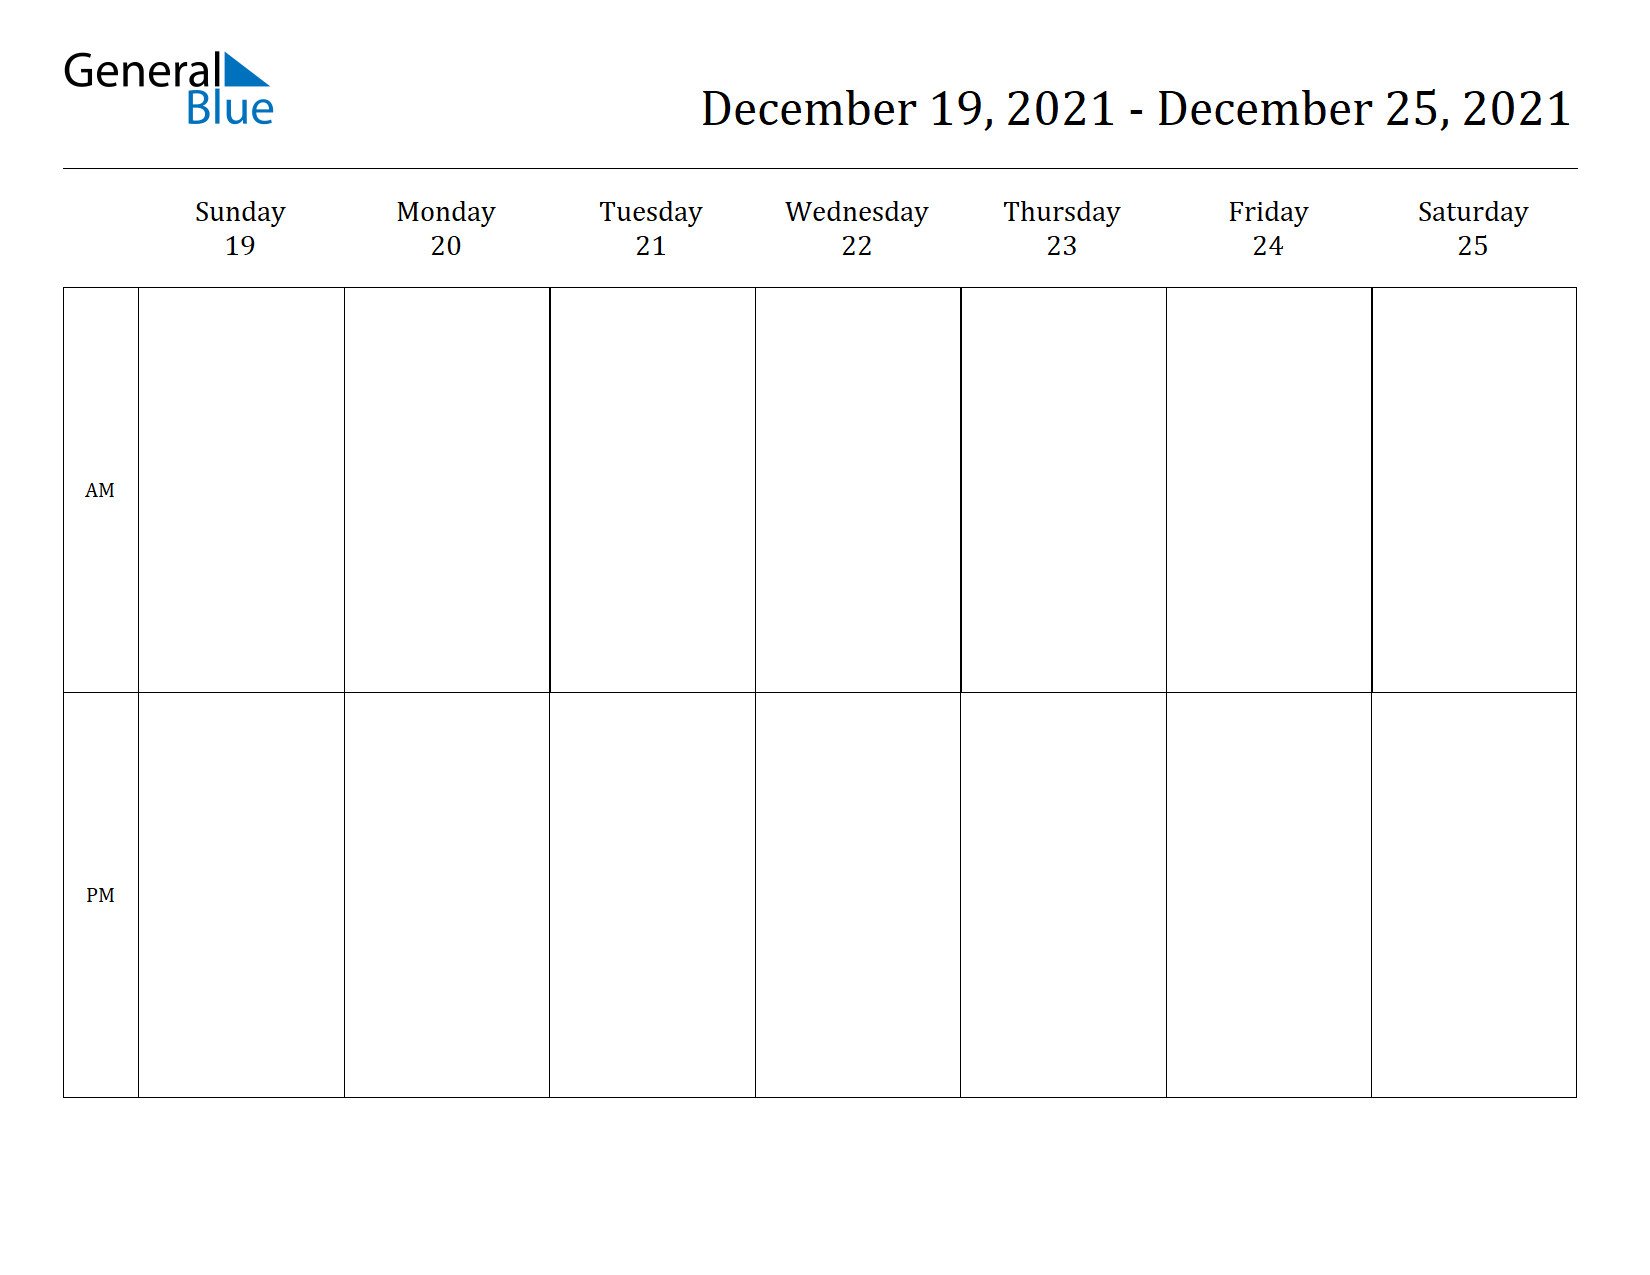 Weekly Calendar for Dec 19, 2021 to Dec 25, 2021